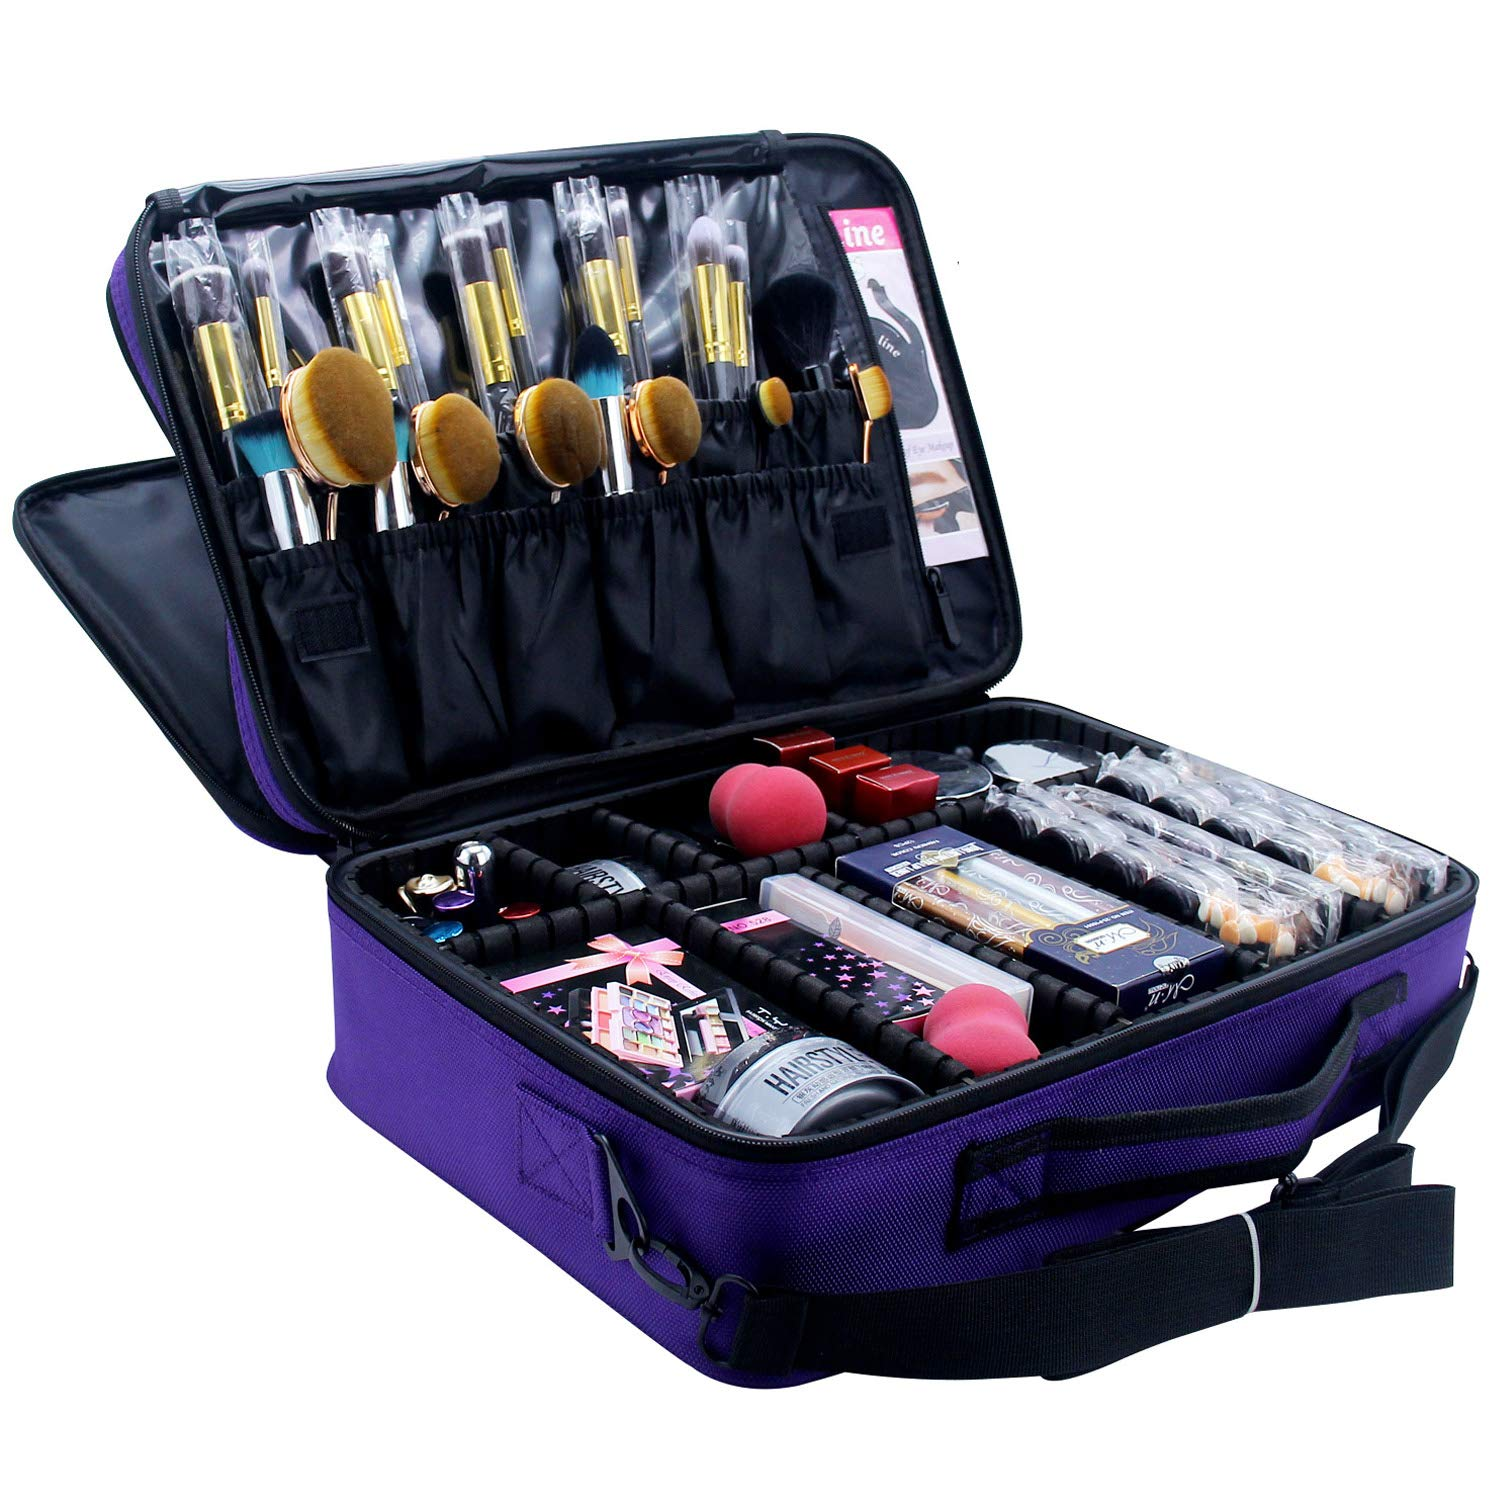 Relavel Professional Makeup Train Case Cosmetic Organizer Make Up Artist Box 3 Layer Large Size with Adjustable Shoulder (Purple)